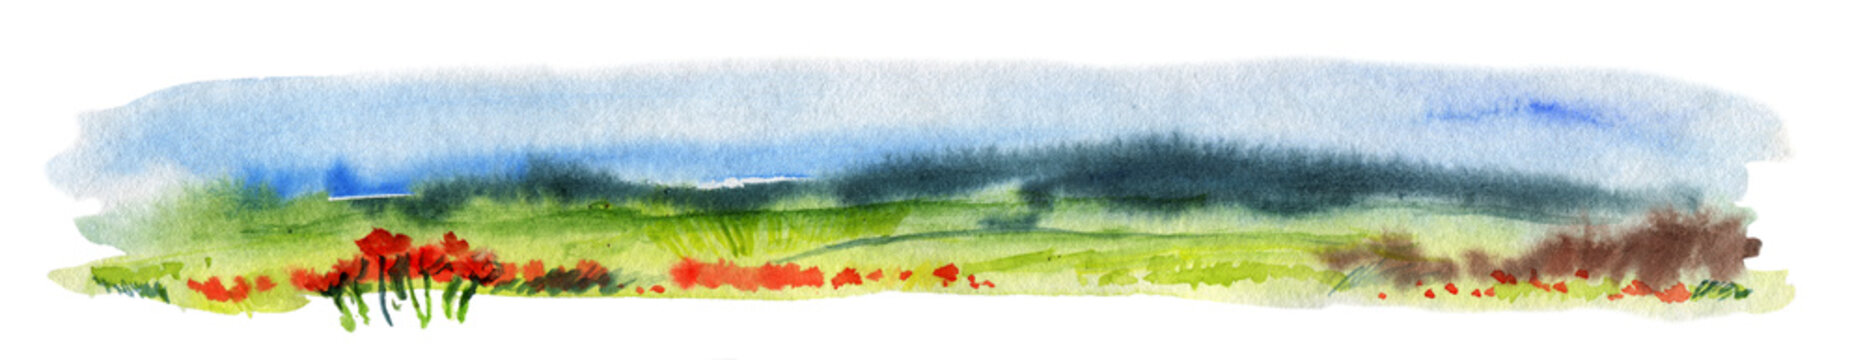 Hand Drawn Traditional Watercolor European Panoramic Landscape